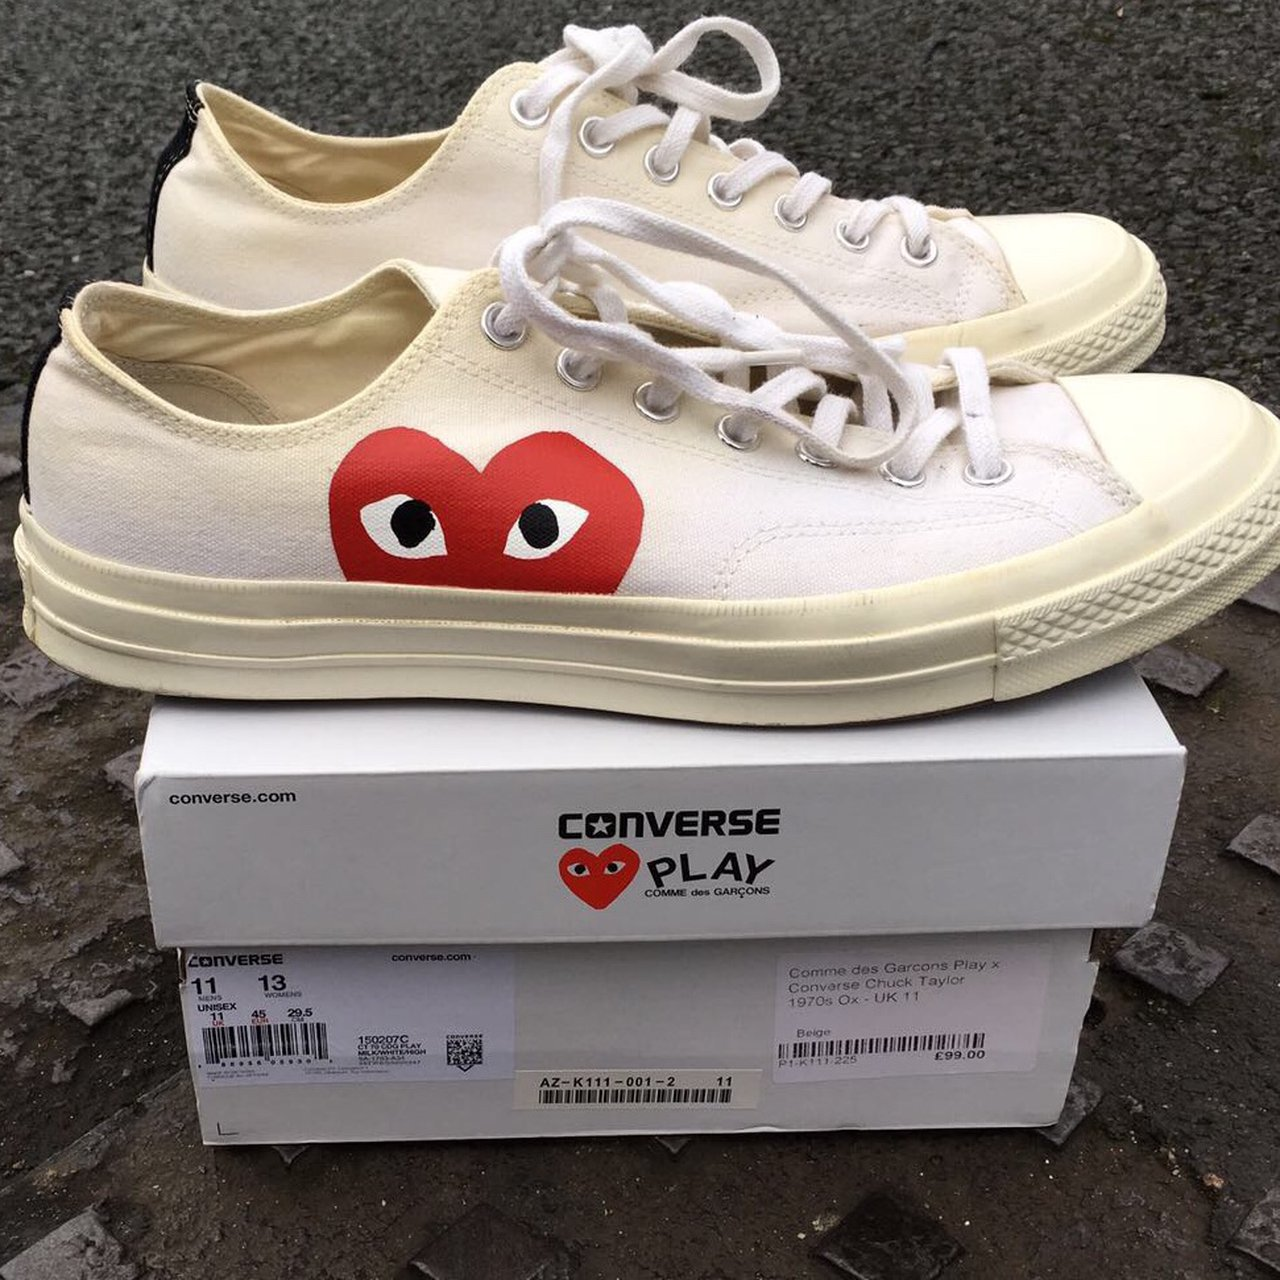 65a738b1c47f Converse x CDG play 70s chucks in cream white in size 11 13 - Depop